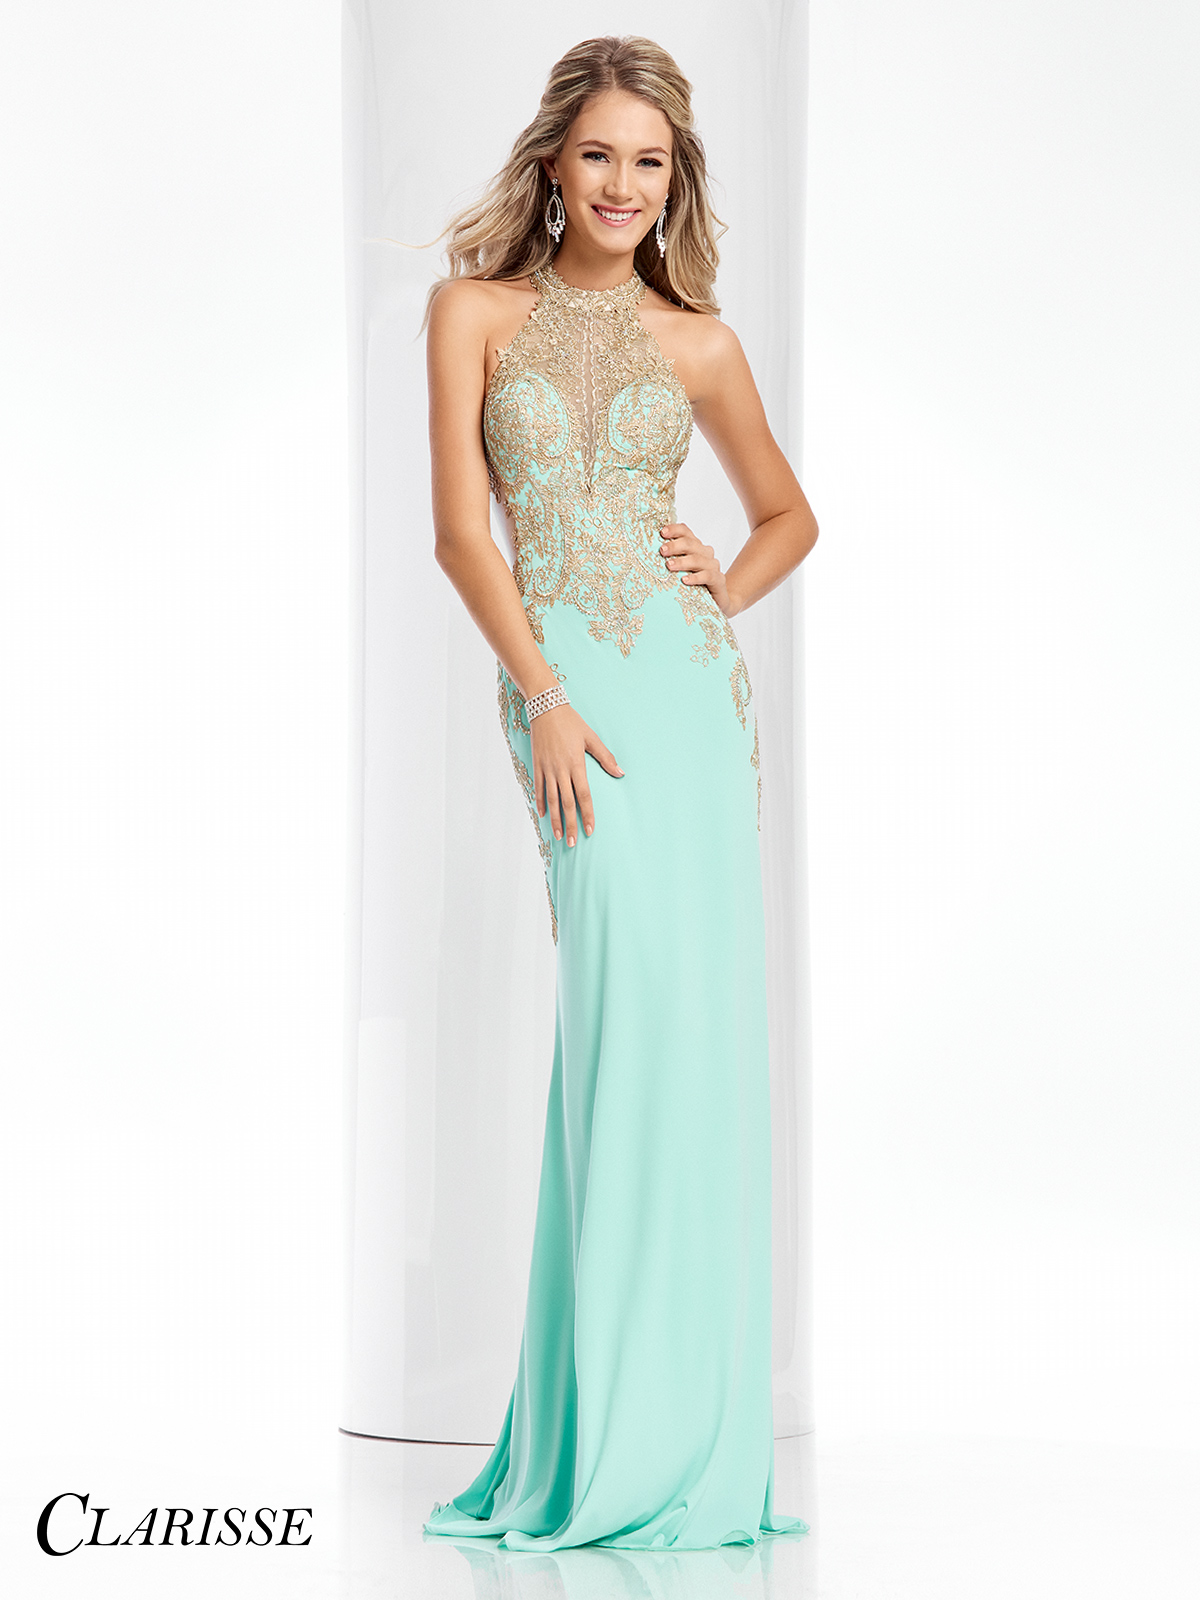 f8d8b0a61d19 ... Clarisse Gold Lace Embellished Prom Dress 4819 ...